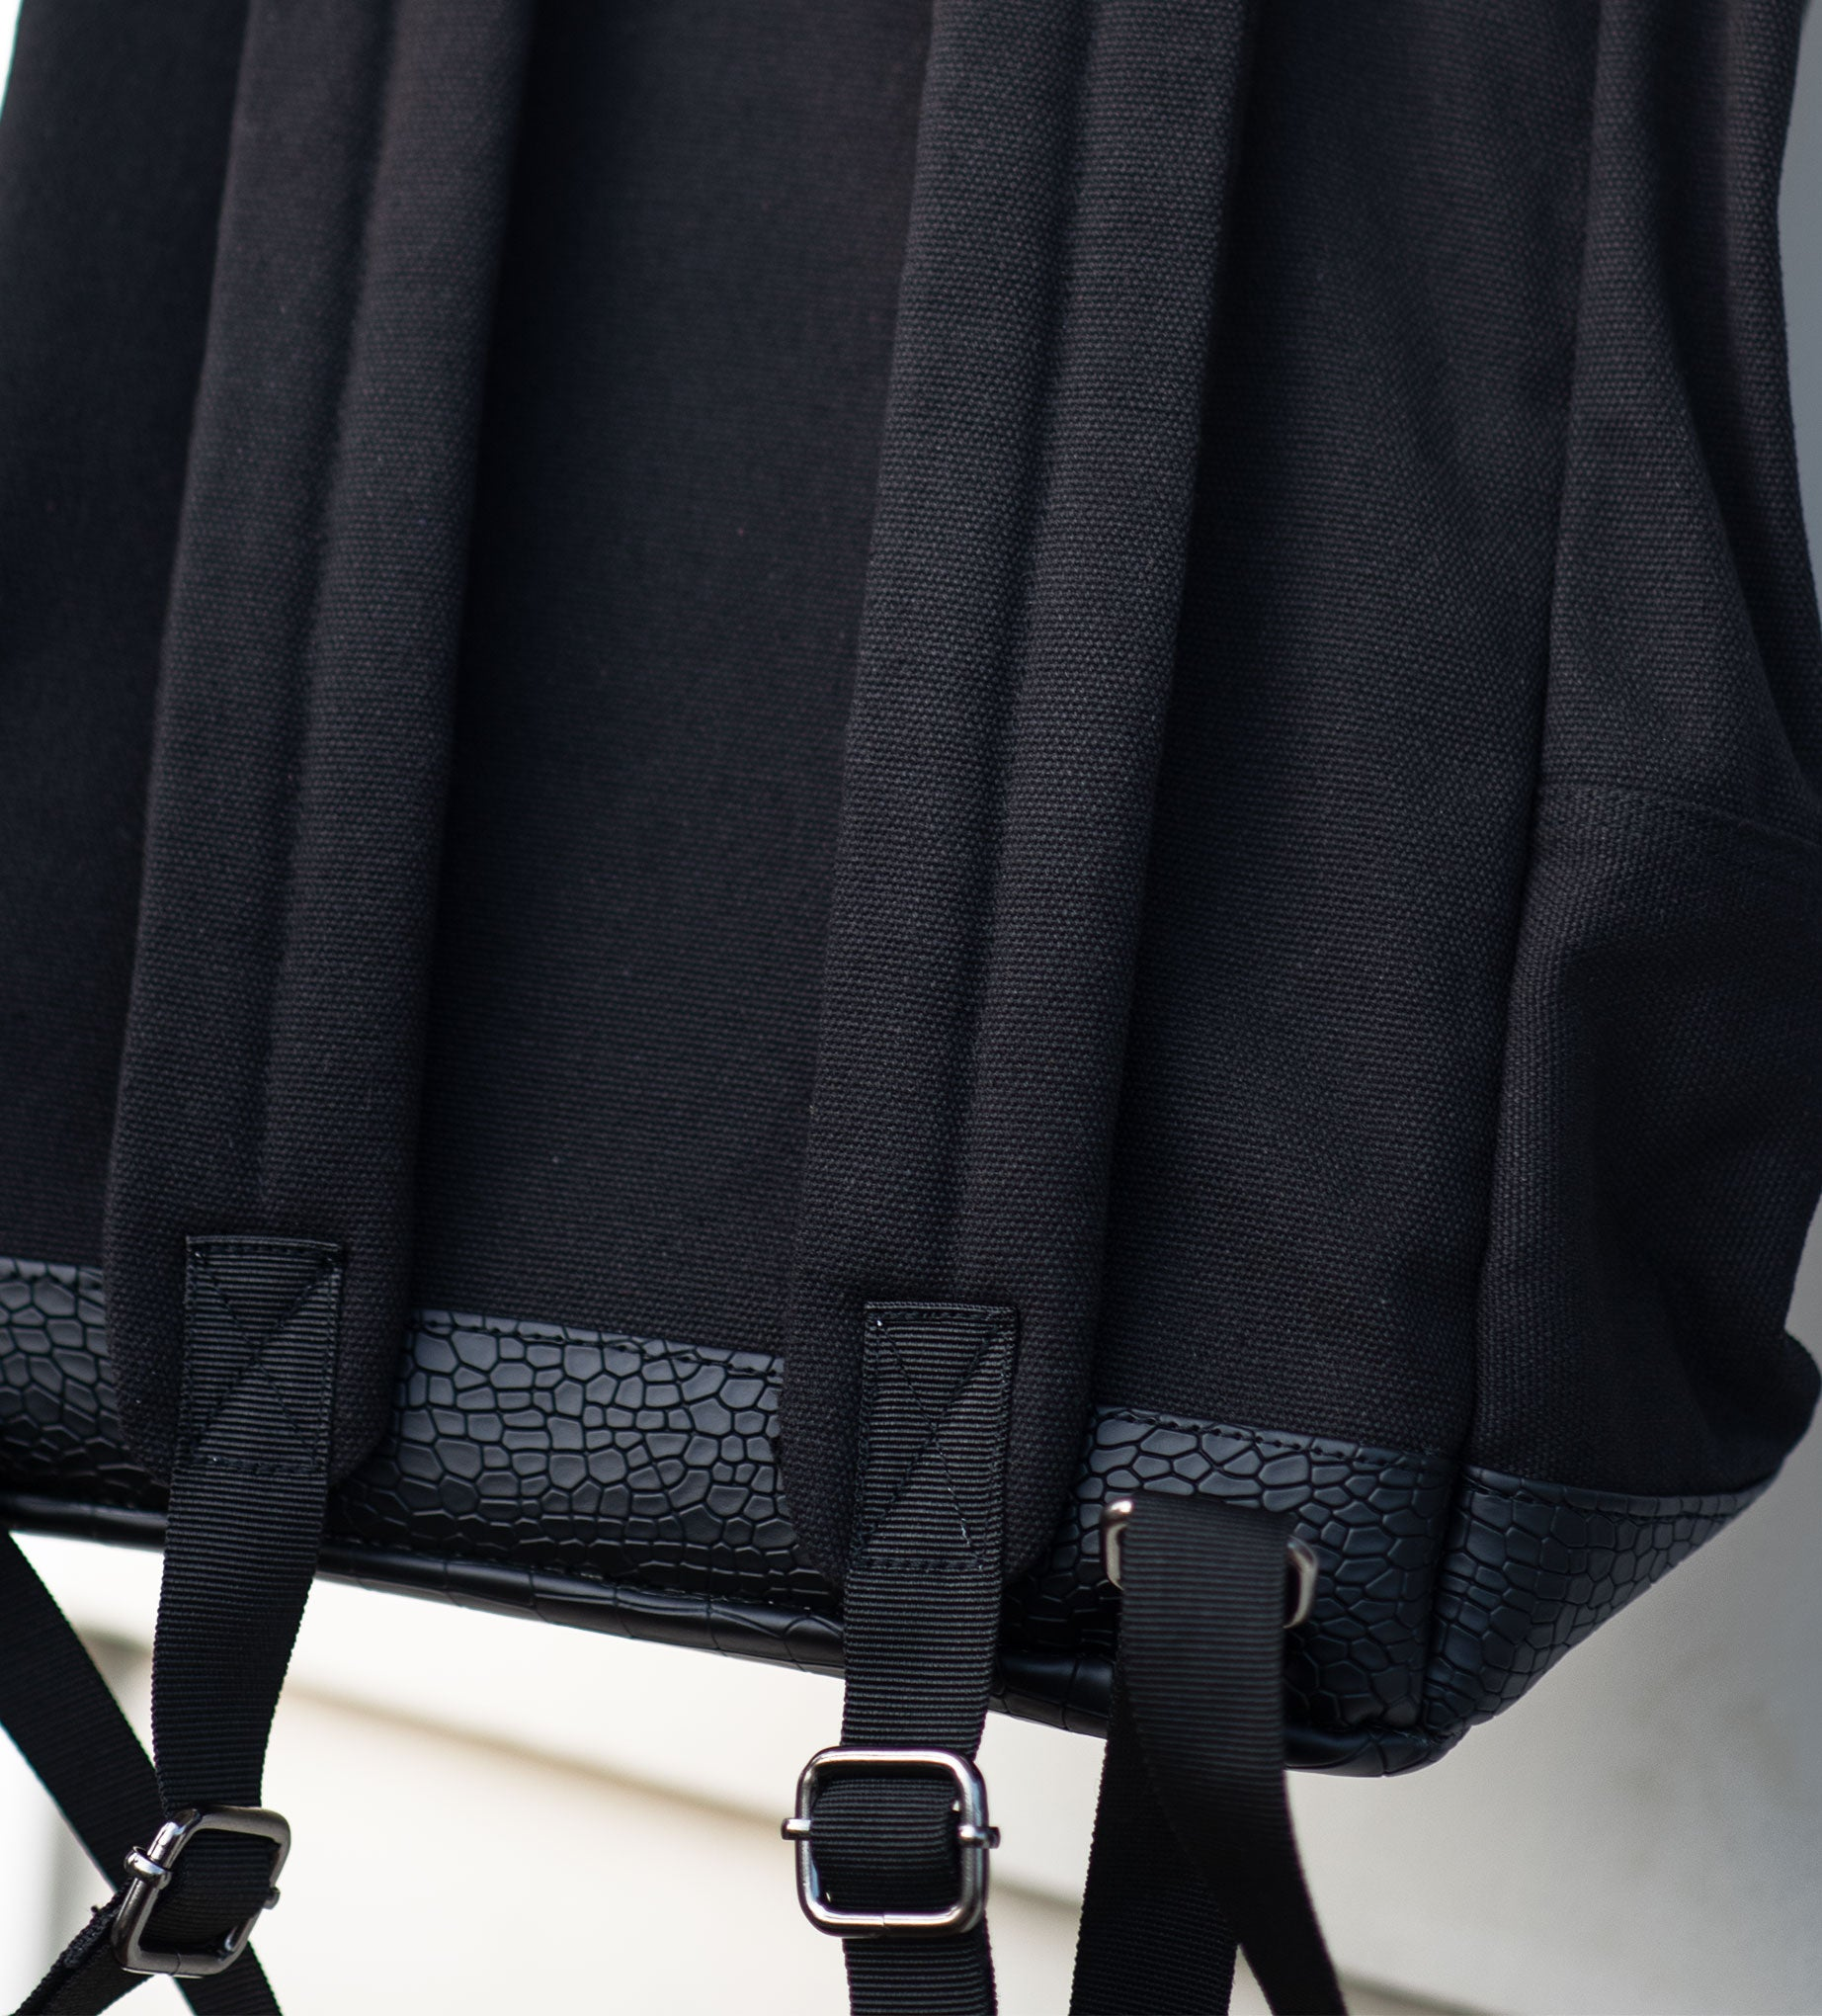 Black and Croc Rucksack